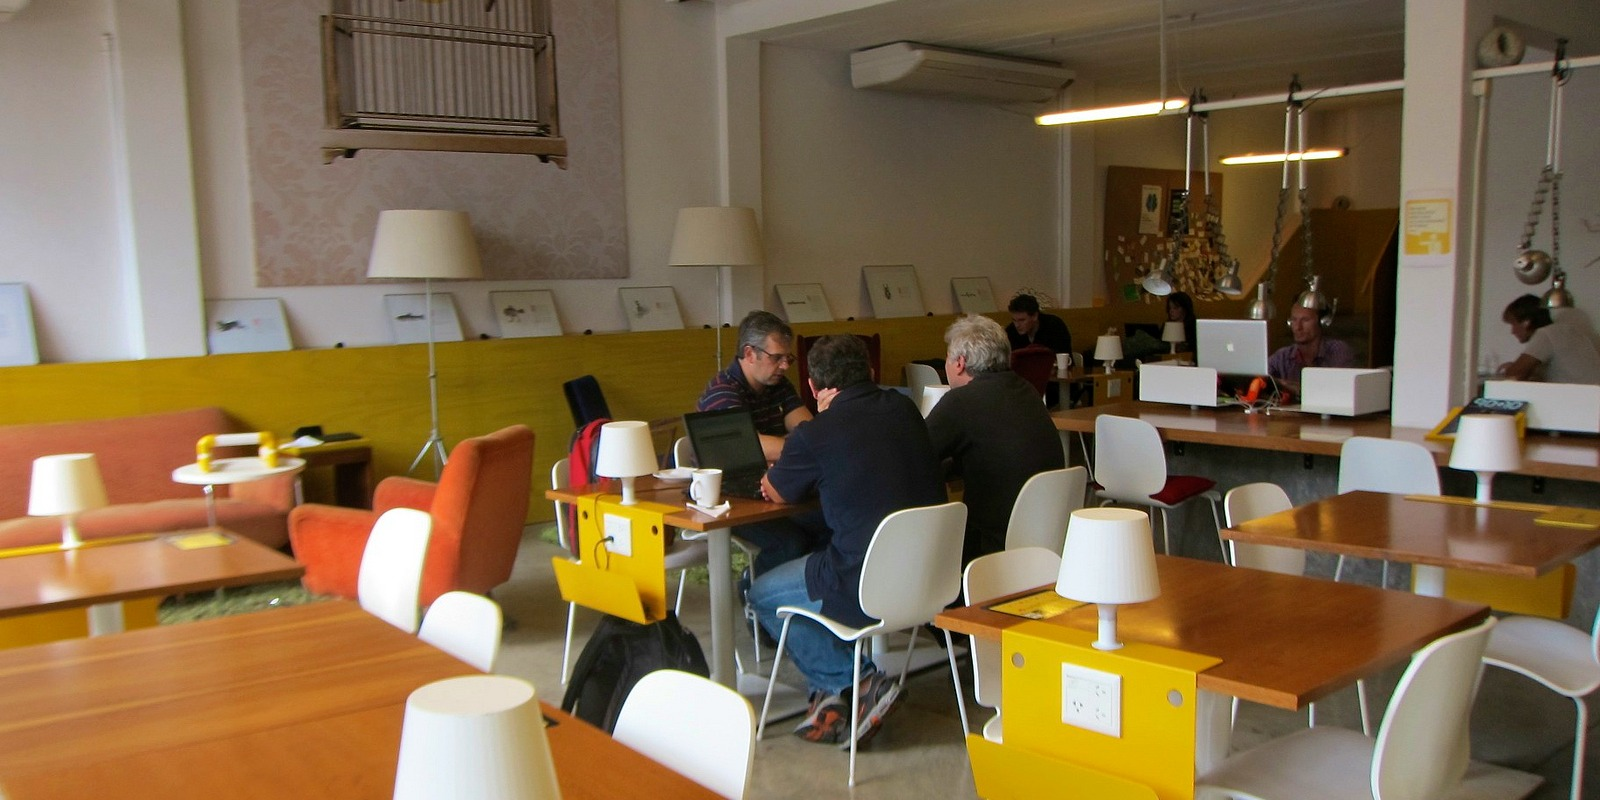 Urban_Station_Coworking (Image by Jennifer Morrow [CC BY 2.0] via Flickr